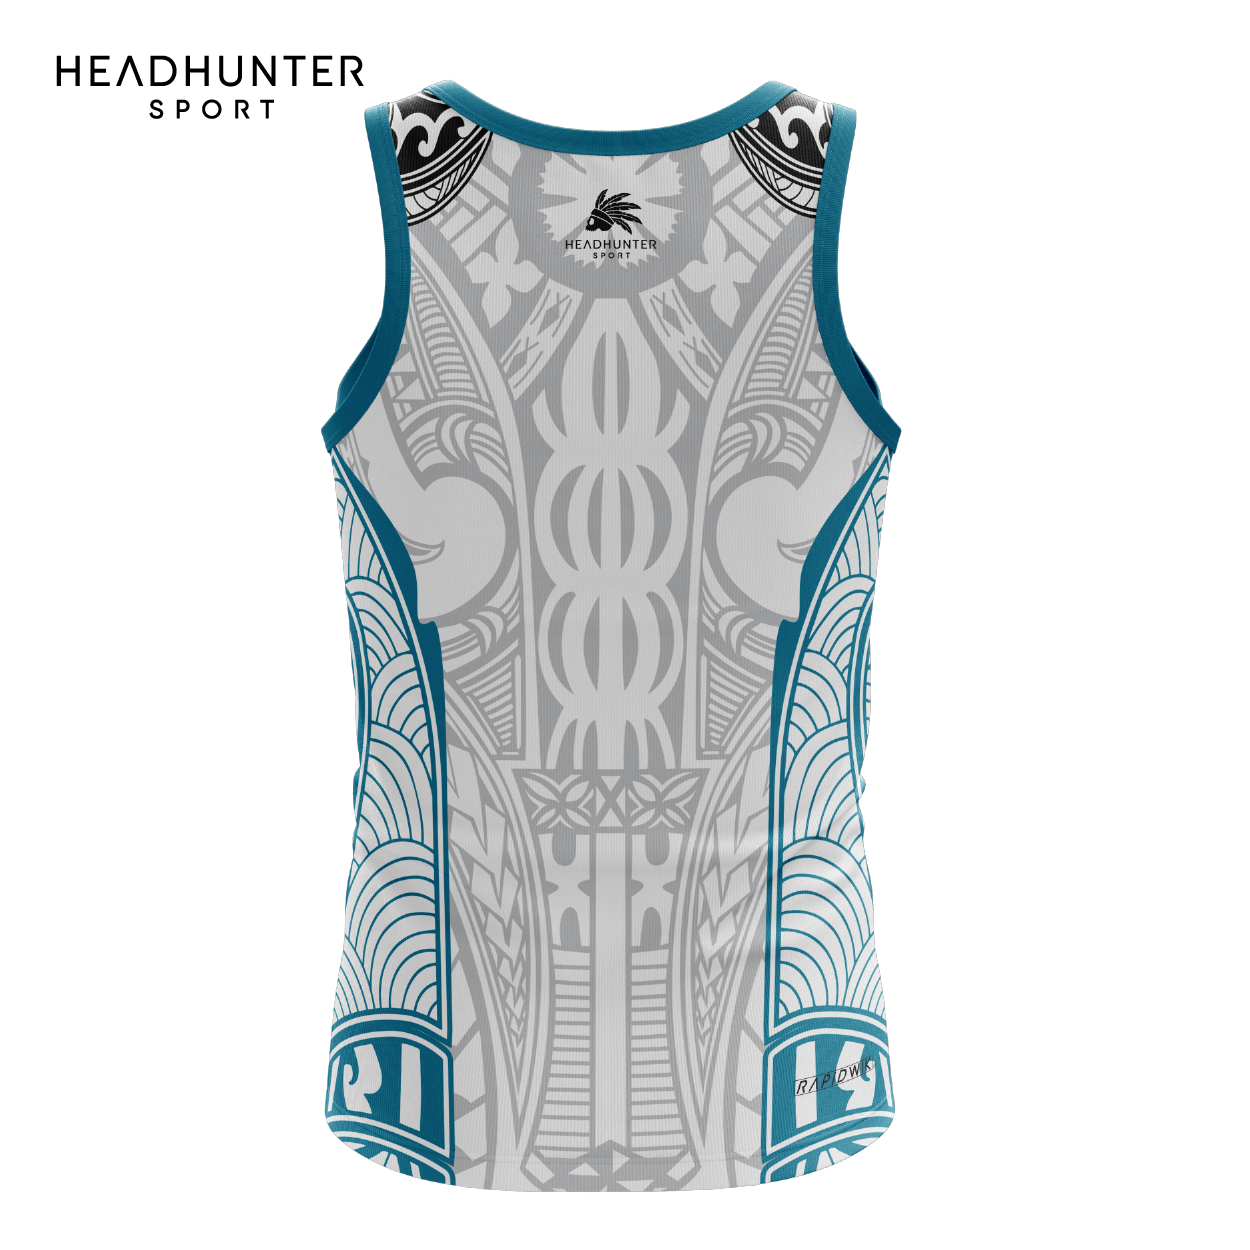 HSBC RUGBY 7S SERIES SINGAPORE 2019 MERCHANDISE FIJI SINGLET